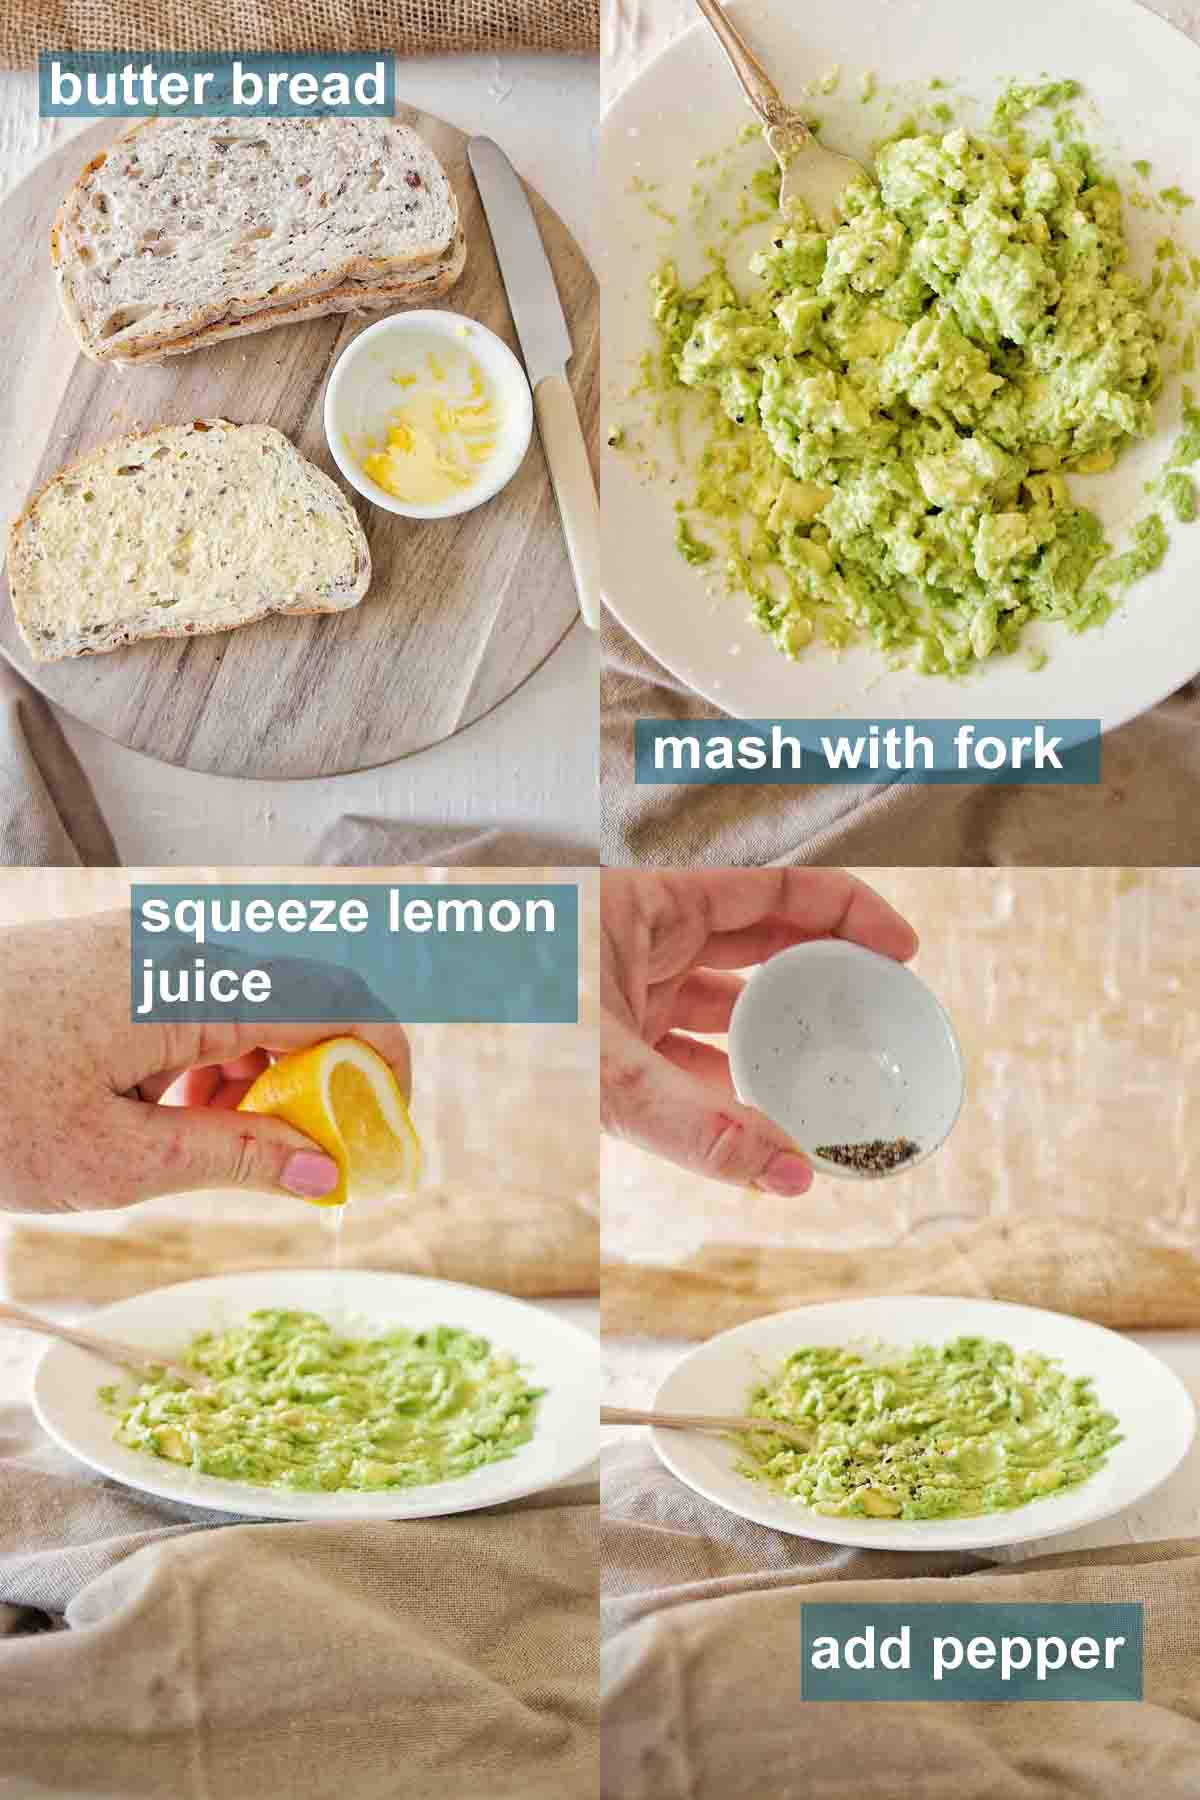 Simple avocado toast instructions with text labels